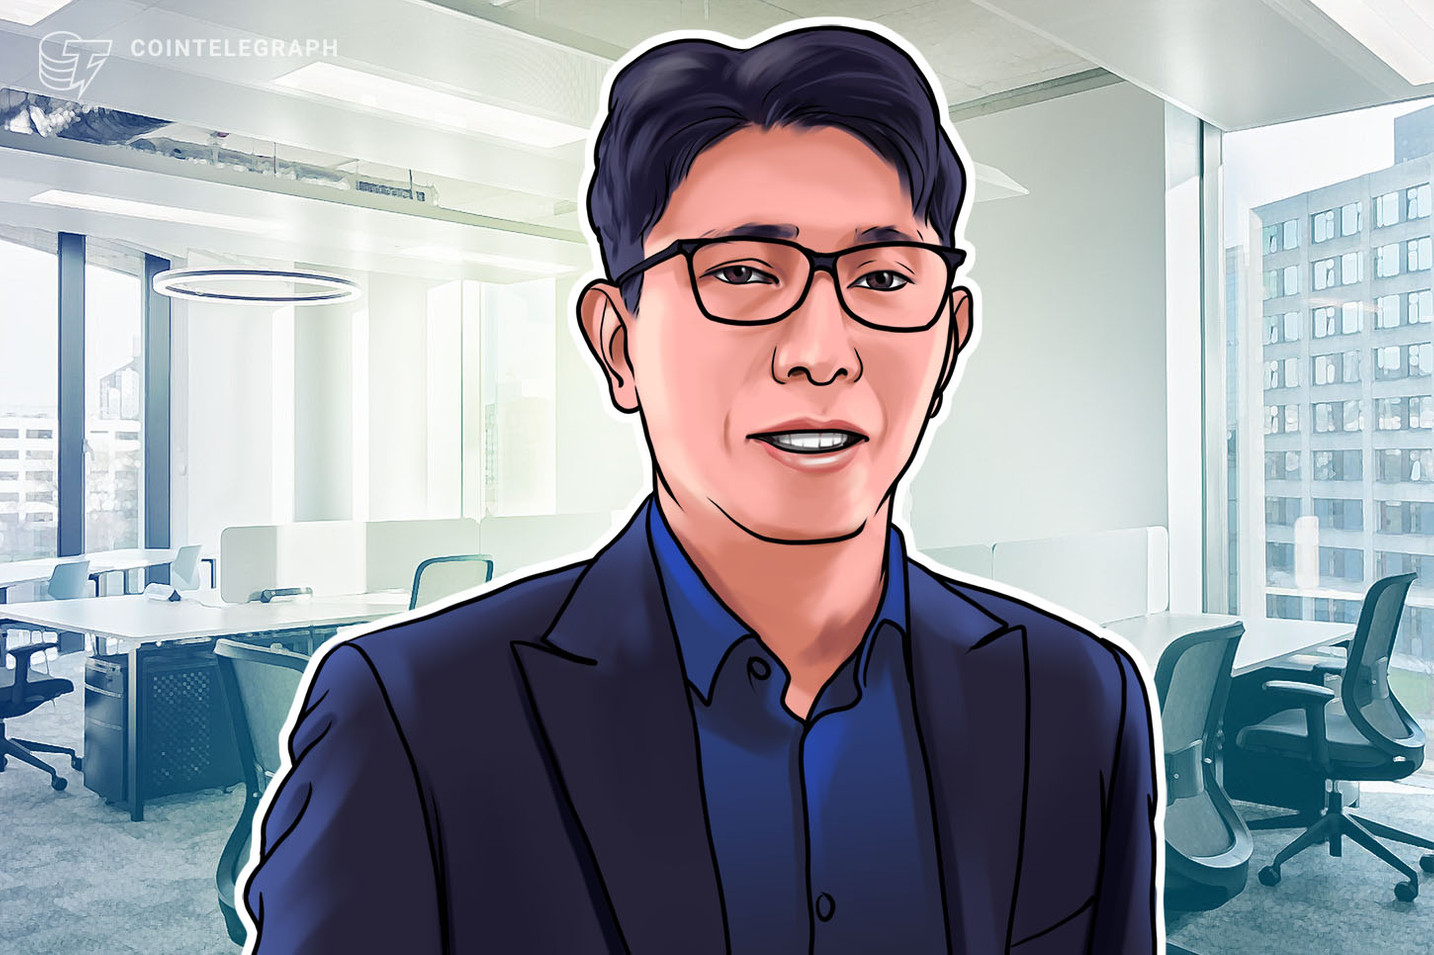 Customer Service Is Key, According to OKEx's CEO